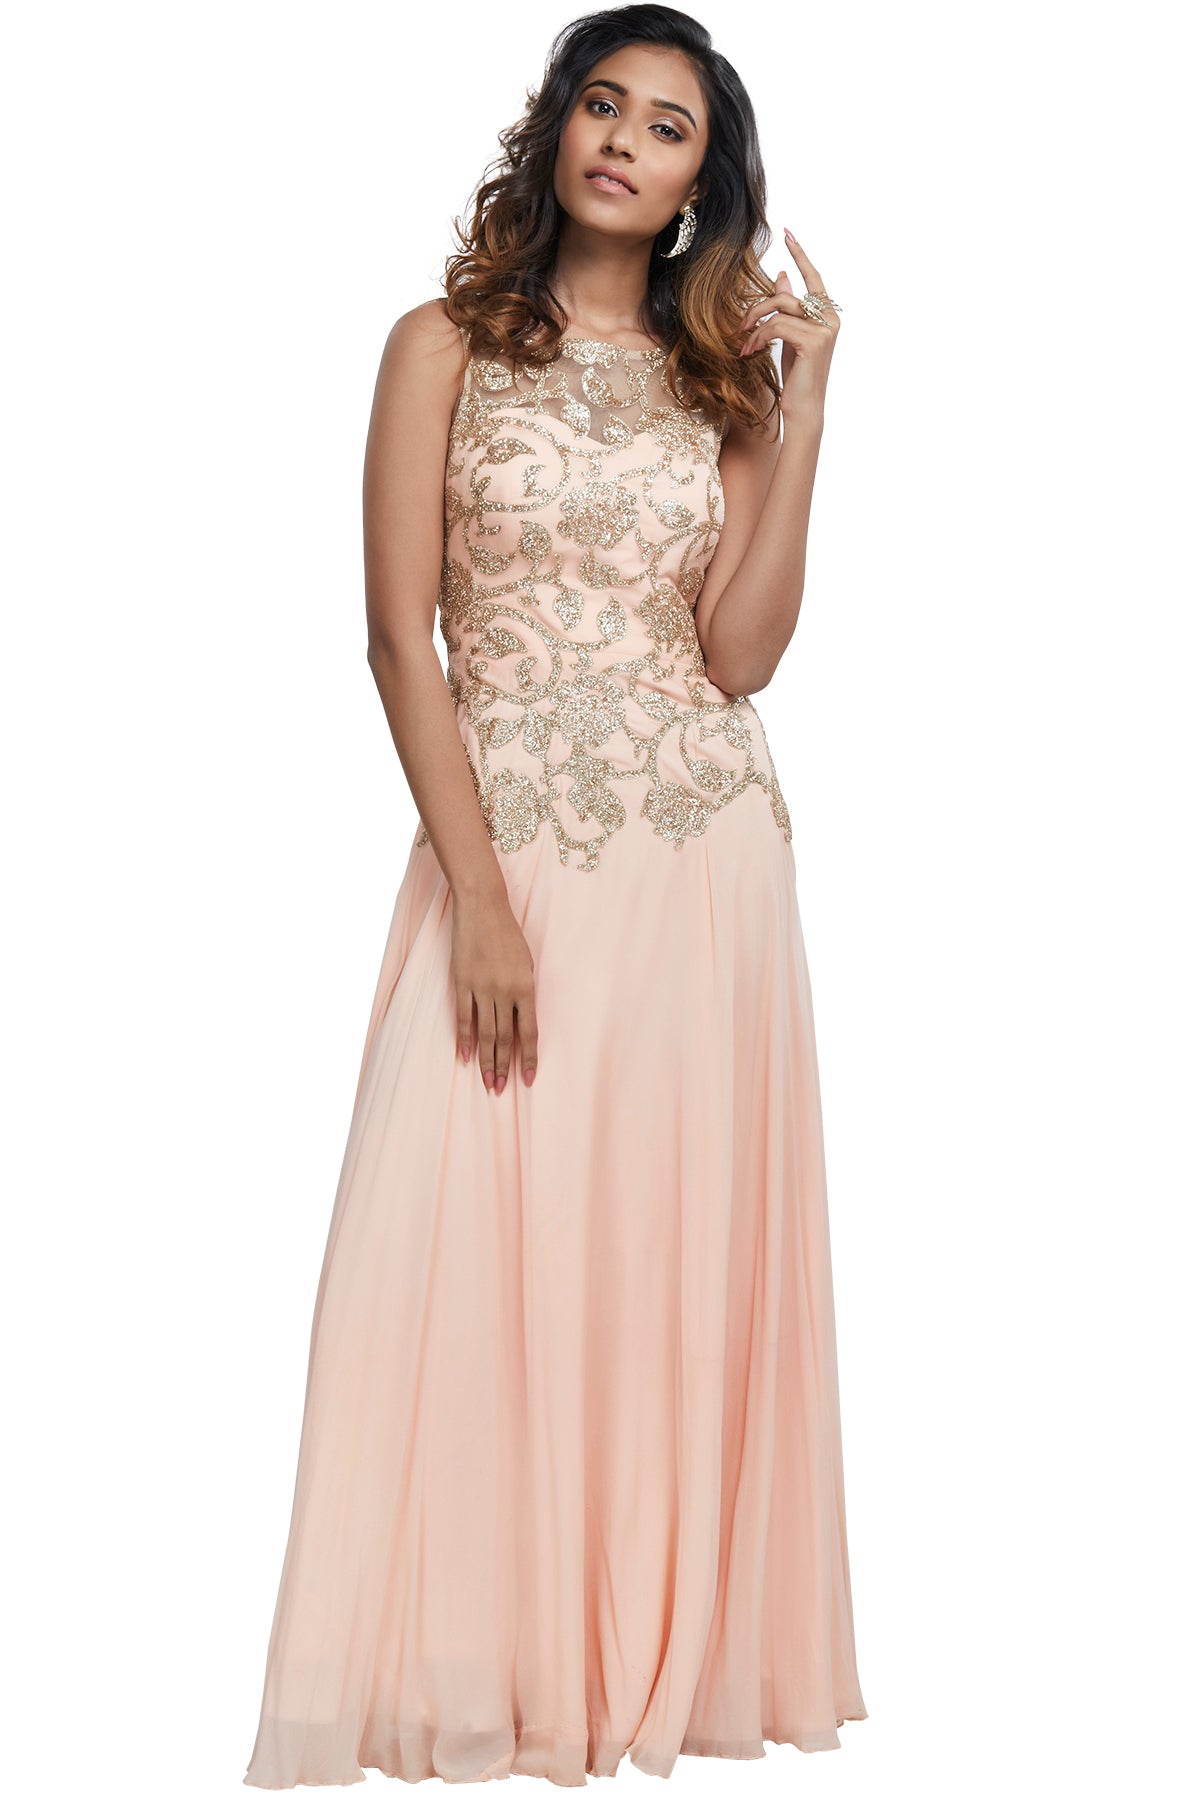 Fly away with your every fantasy in this perfect peach gown with champagne gold glittery embellishments to bring out the bubbly in you.